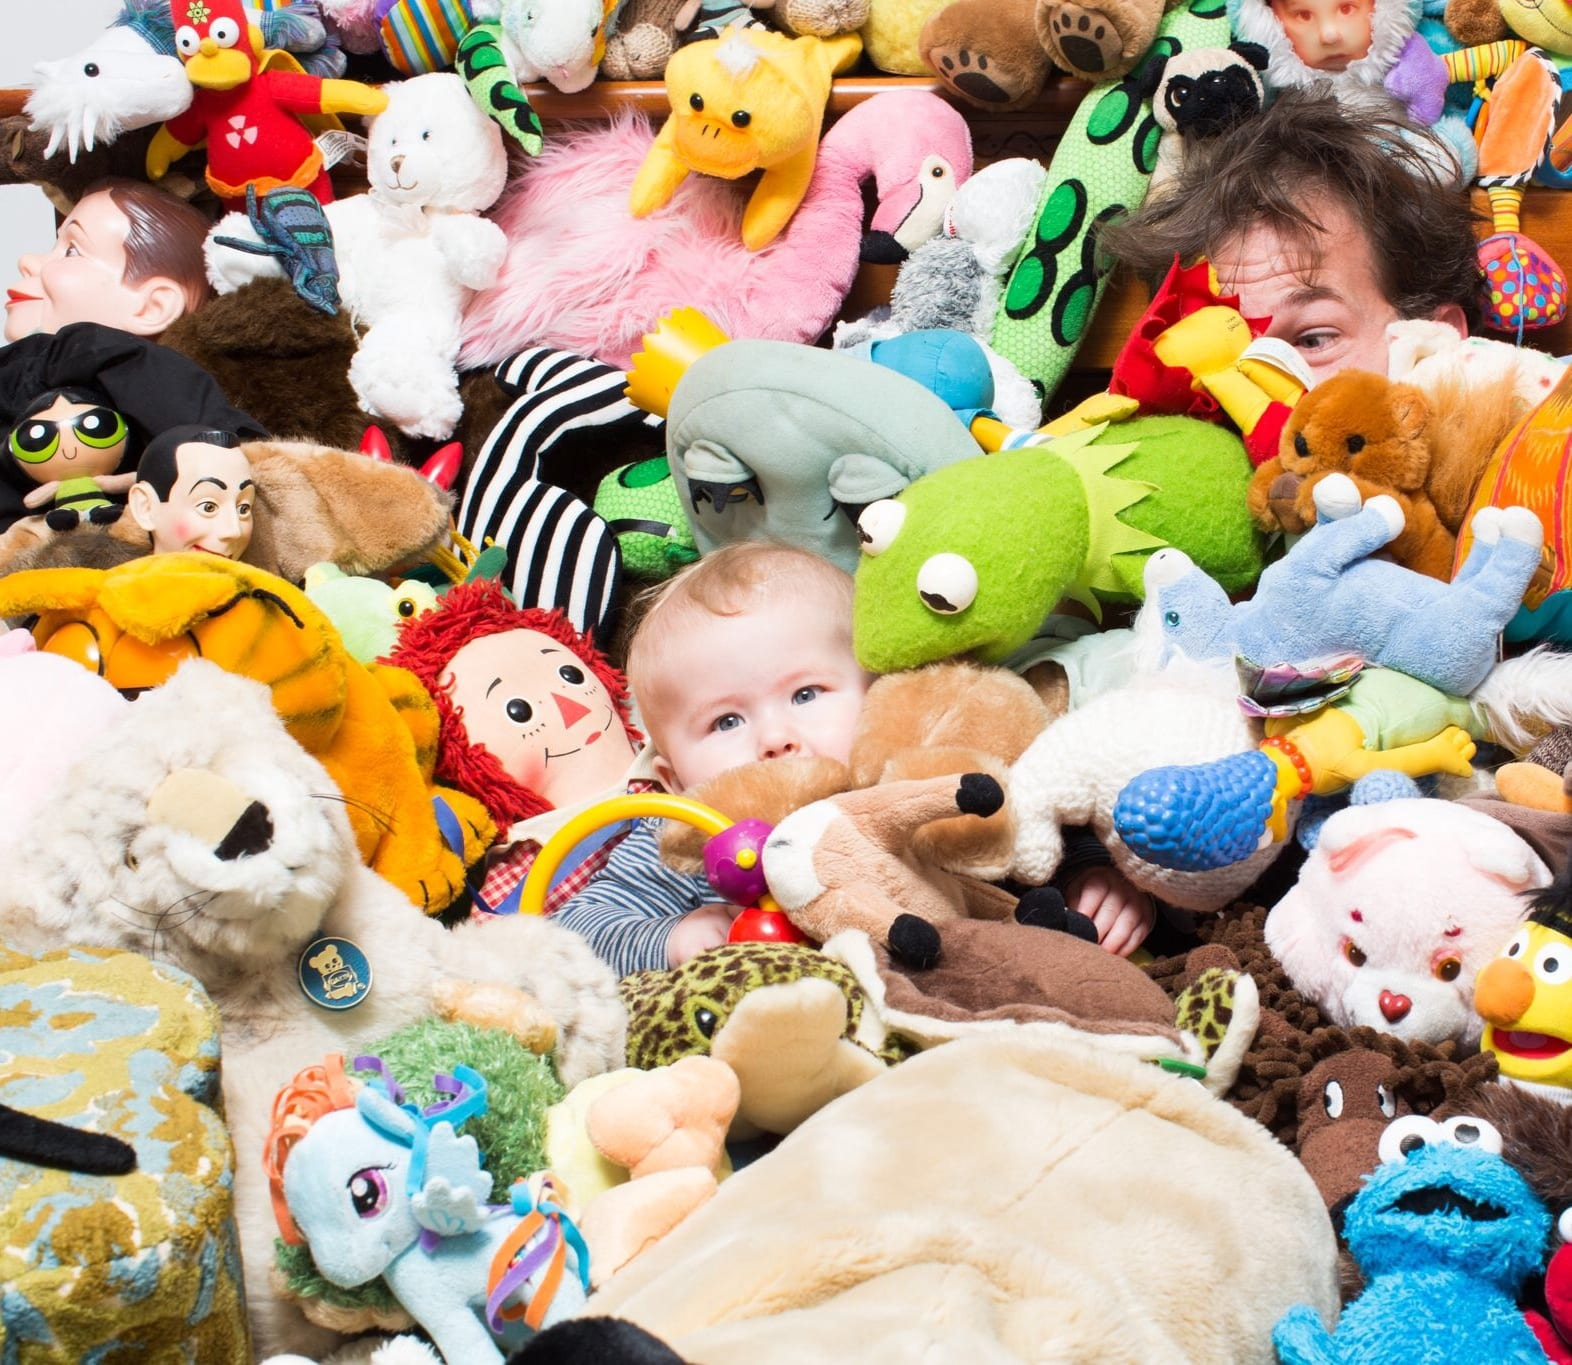 Recreate The E T Stuffed Animal Scene With Your Baby